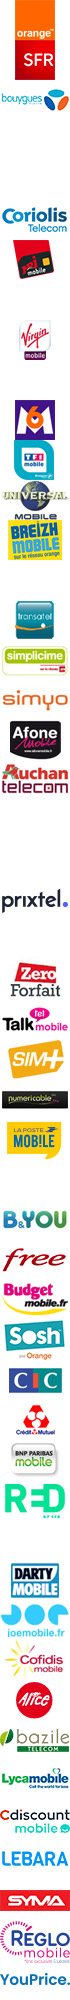 Forfait NRJ Mobile Tablette 4G Pocket 8Go